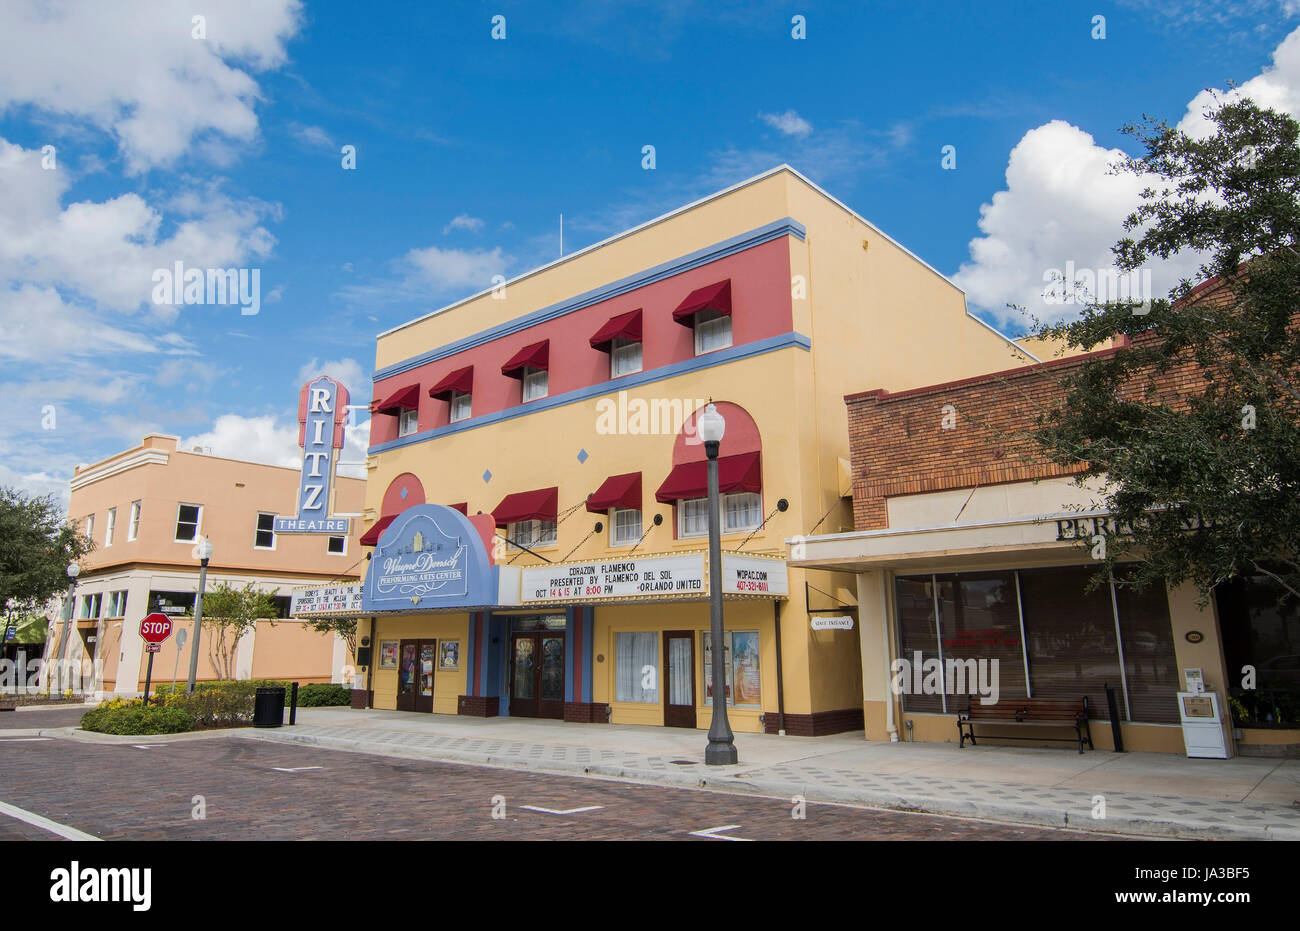 Sanford Florida Centre-ville de Ritz Theater Wayne Densch construction divertissement pour les spectacles monument Banque D'Images